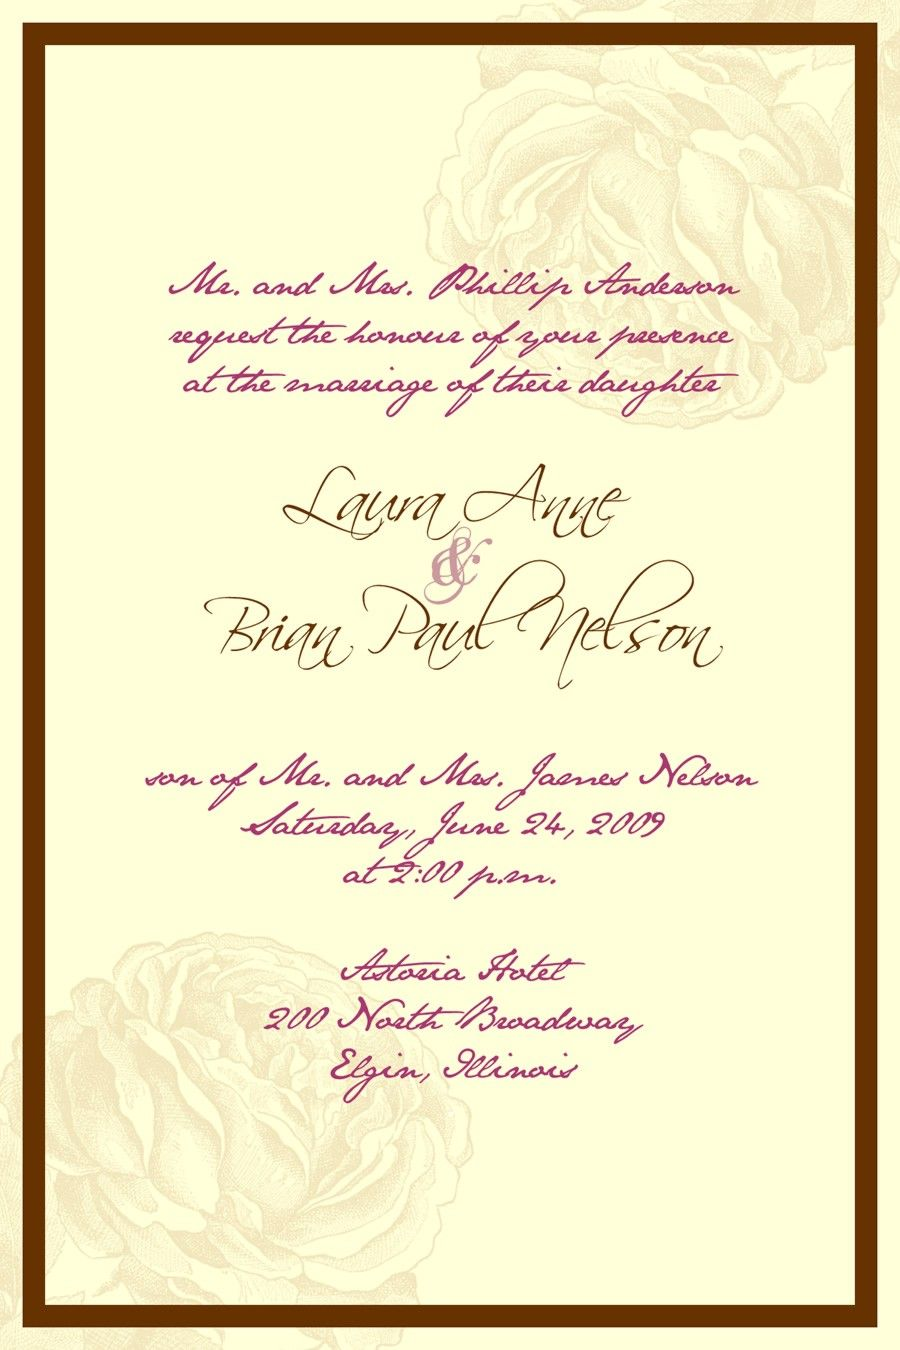 Beach Wedding Invitations The beach theme wedding is one of the most ...